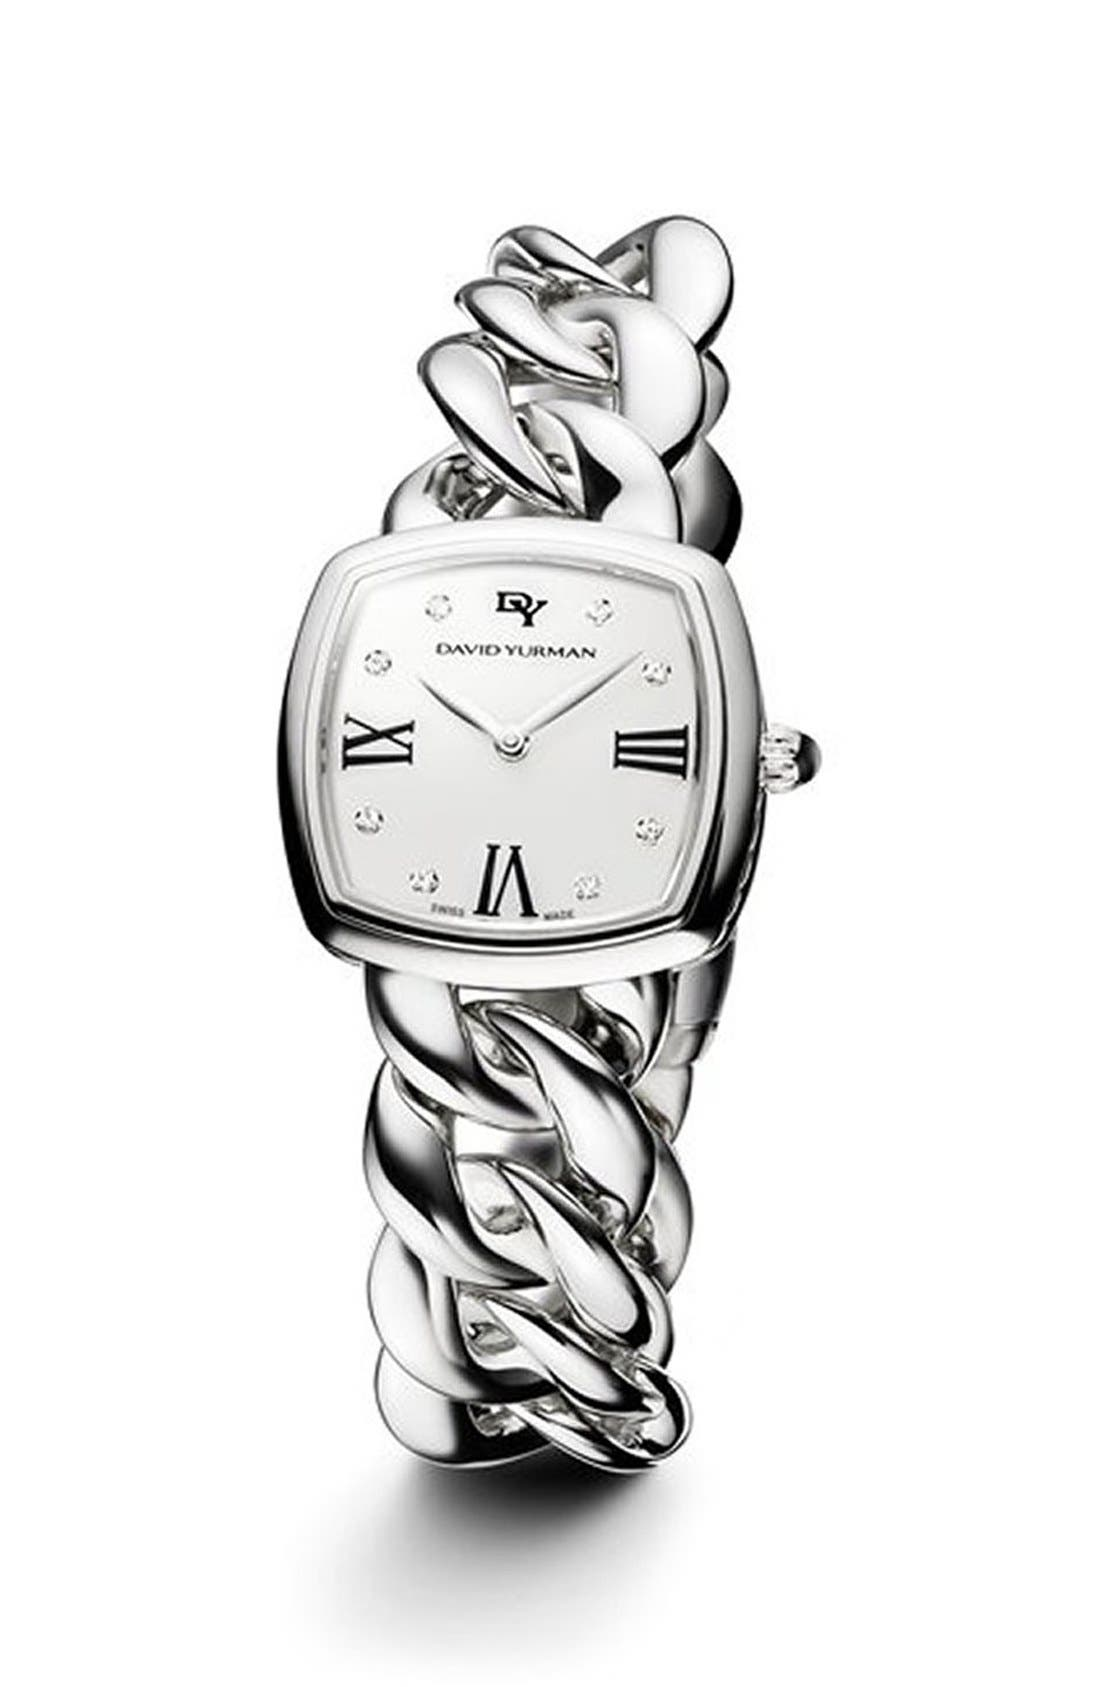 Main Image - David Yurman 'Albion' 27mm Stainless Steel Quartz Watch with Diamonds